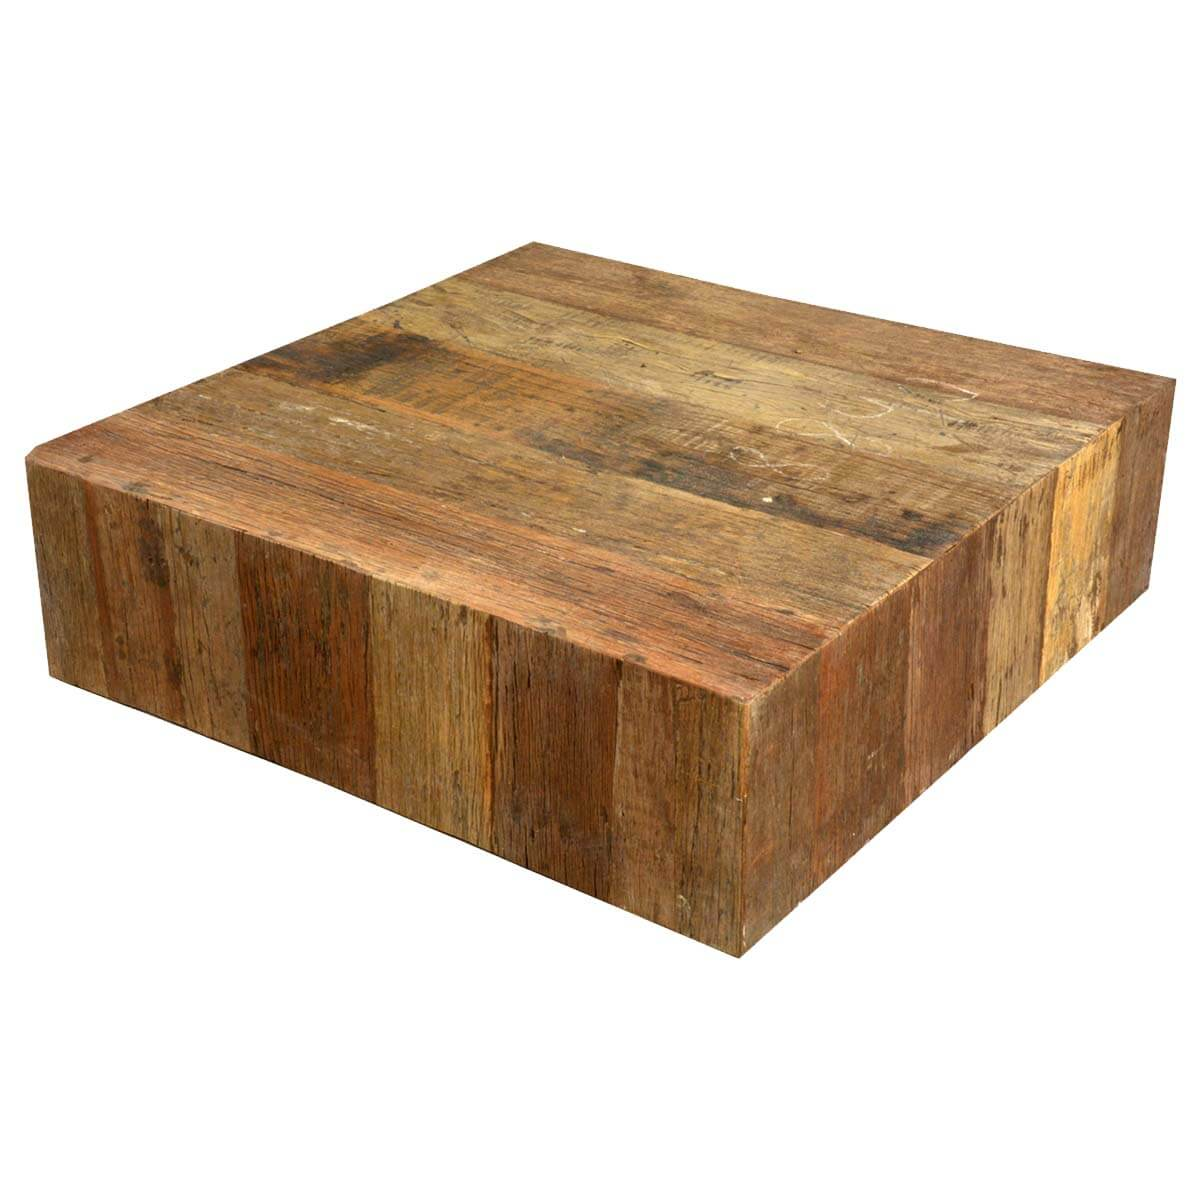 Unique rustic railroad reclaimed wood square coffee table ebay Wood square coffee tables